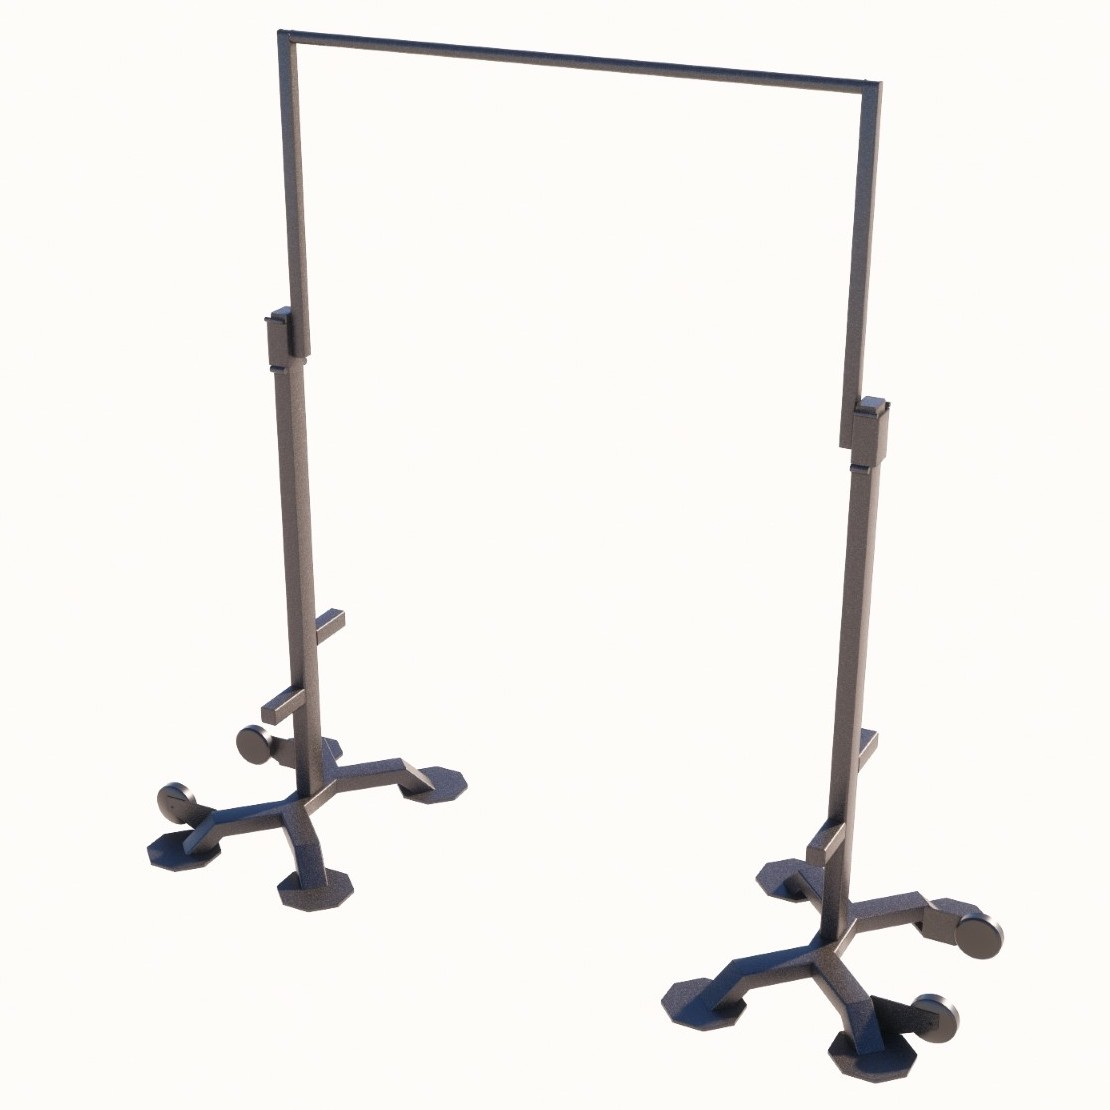 ACFT Portable Leg Tuck Station